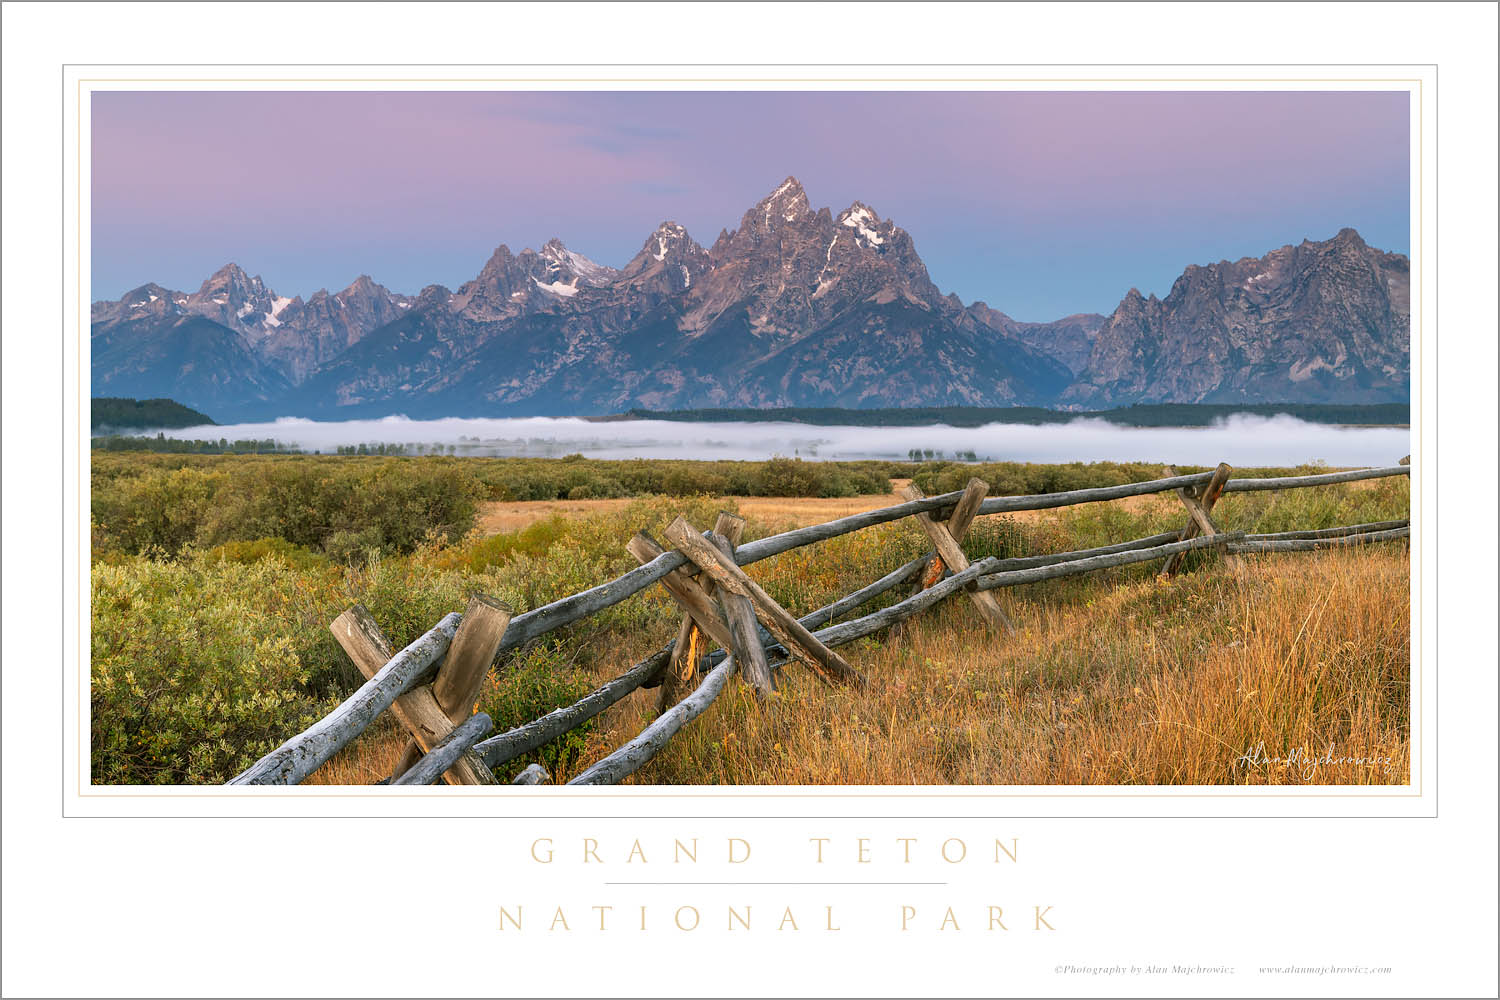 Teton Range at Cunningham Ranch, Grand Teton National Park Wyoming